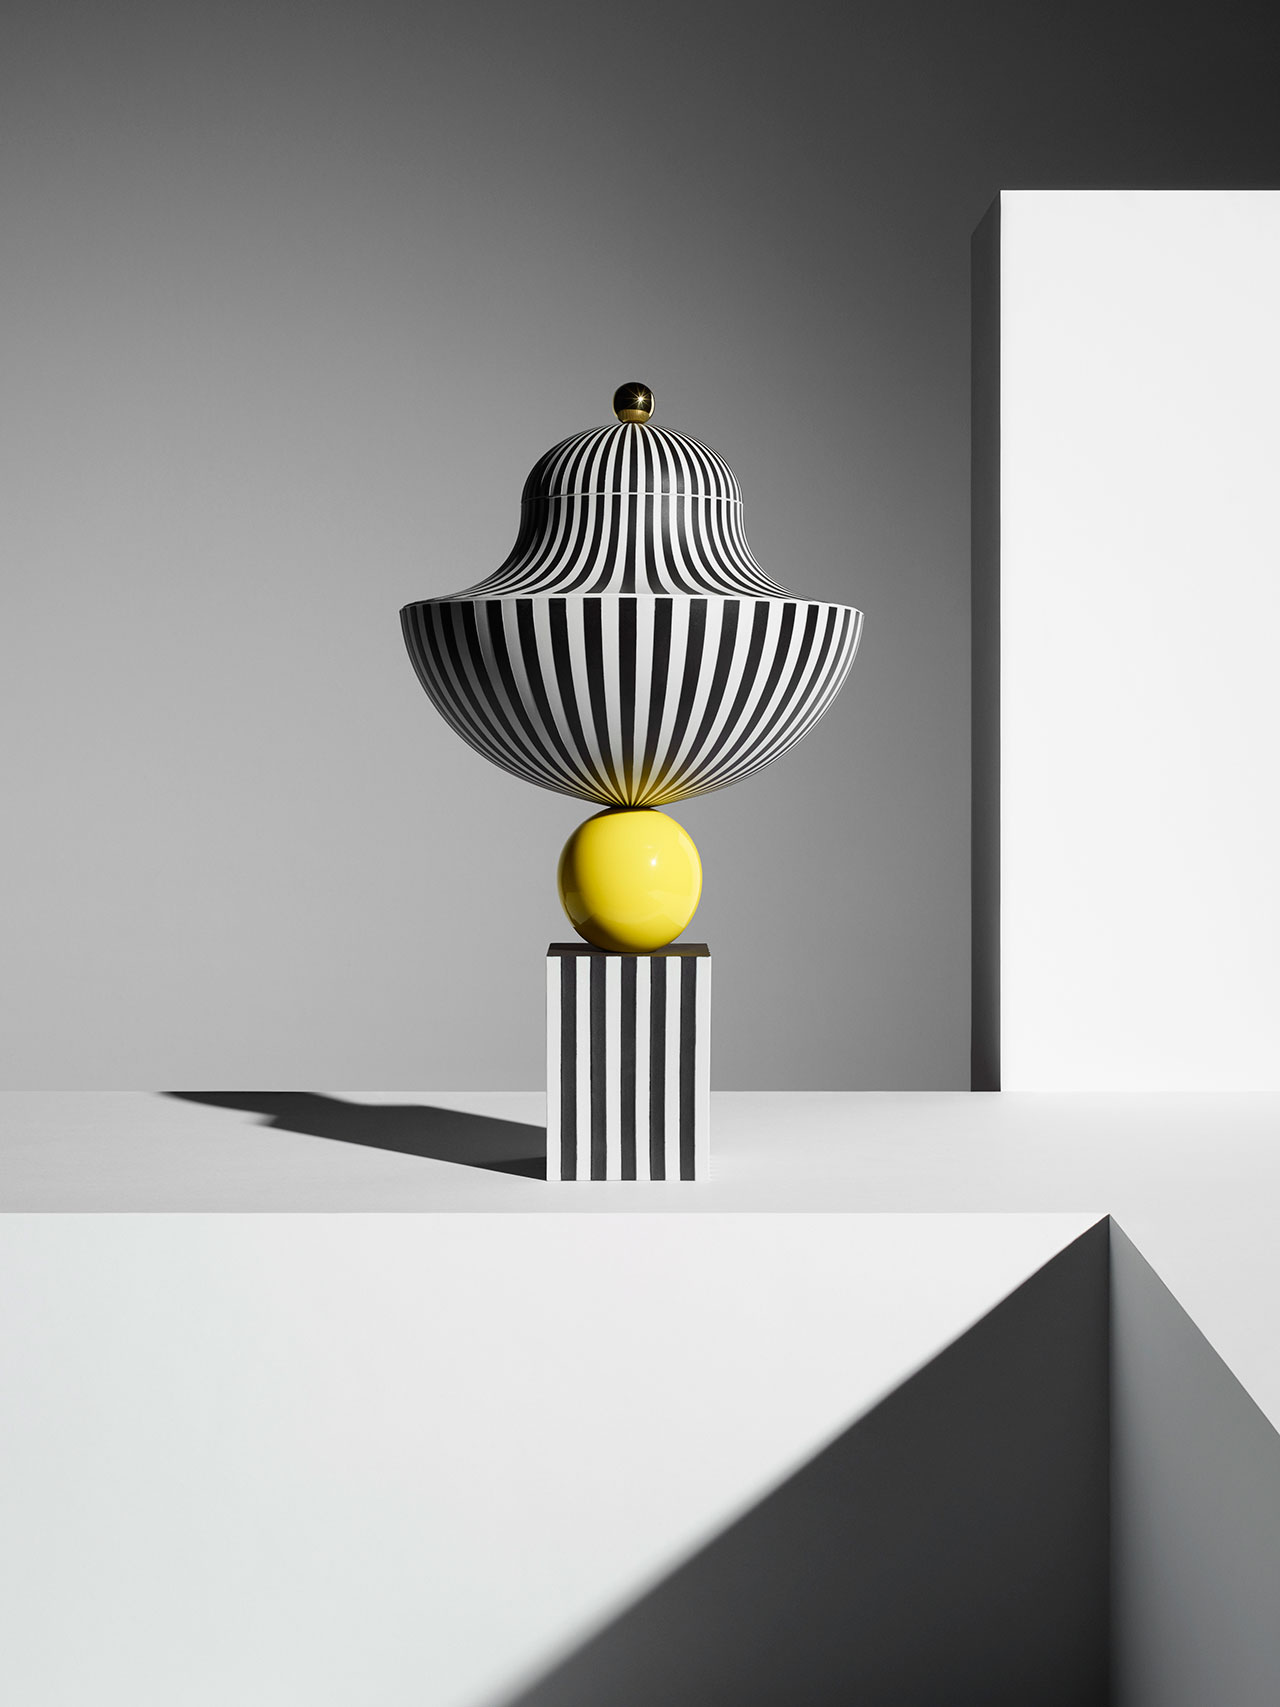 Wedgwood by Lee Broom, Bowl On Yellow Sphere. Photo by Michael Bodiam.